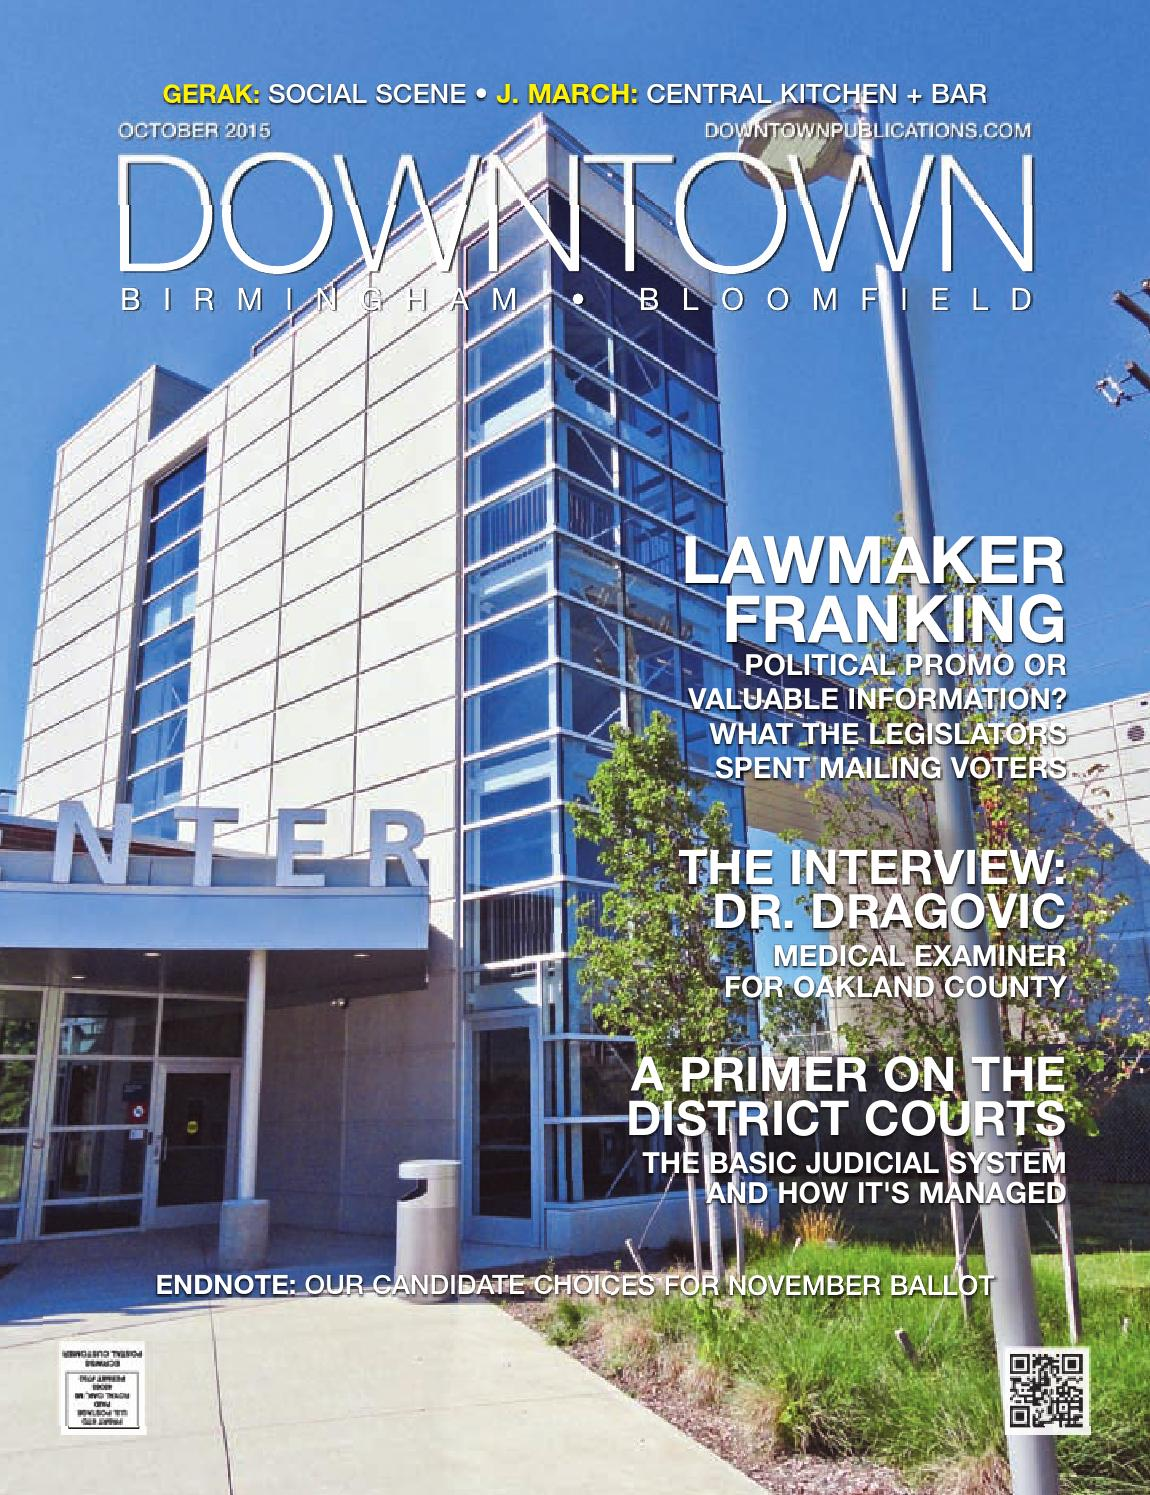 010afb9861fa Downtown Birmingham Bloomfield by Downtown Publications Inc. - issuu